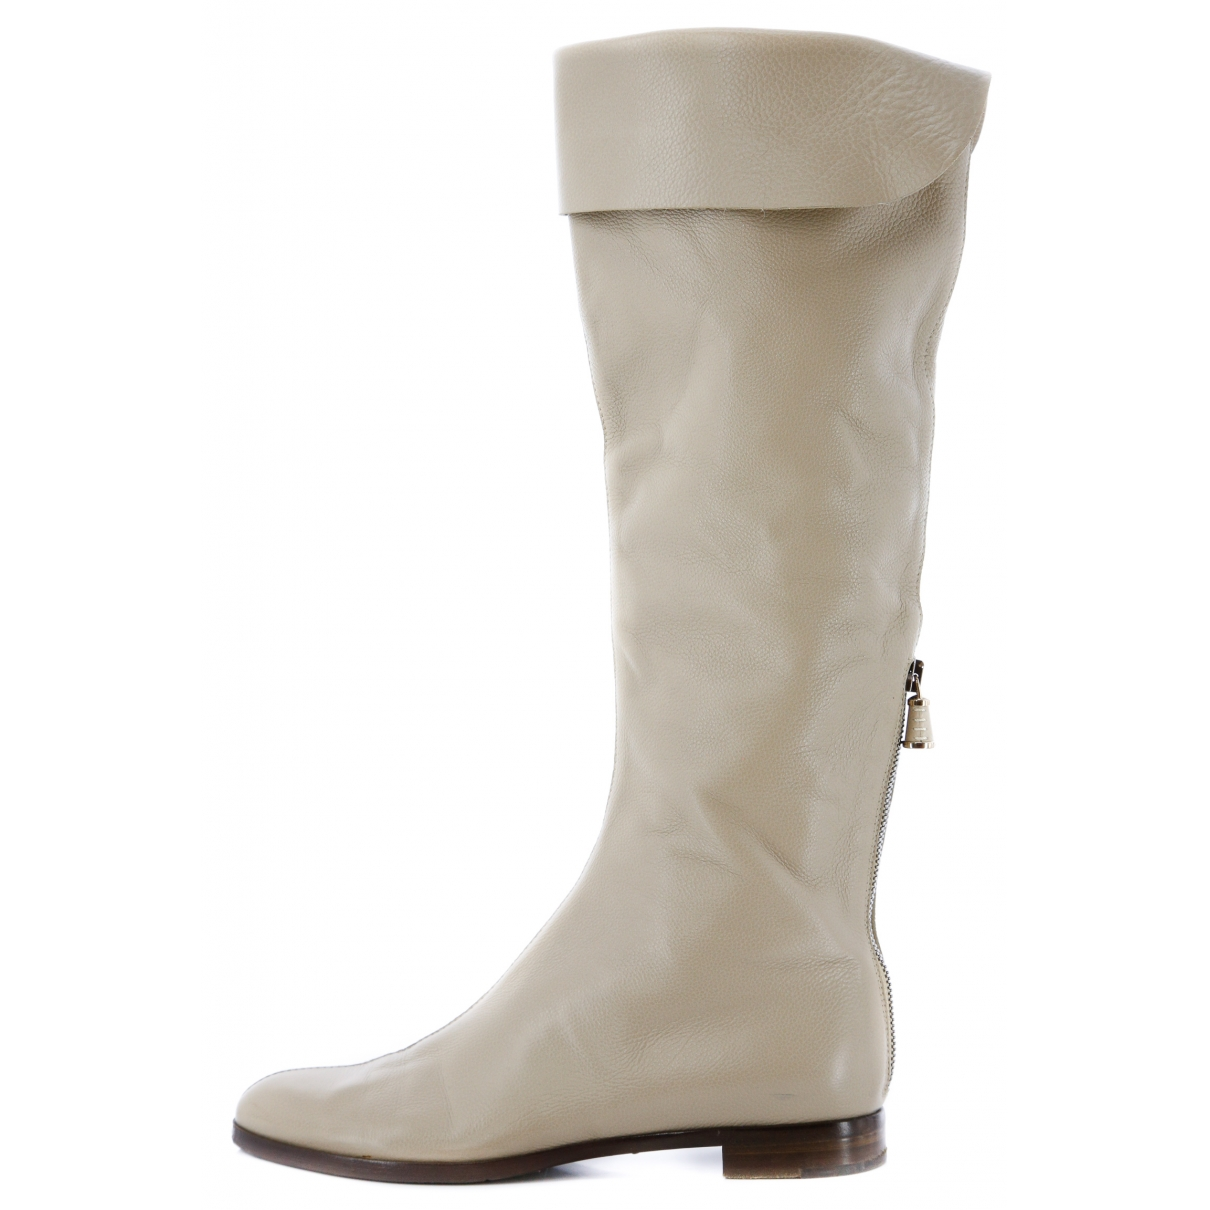 Sergio Rossi \N Beige Leather Boots for Women 37 EU